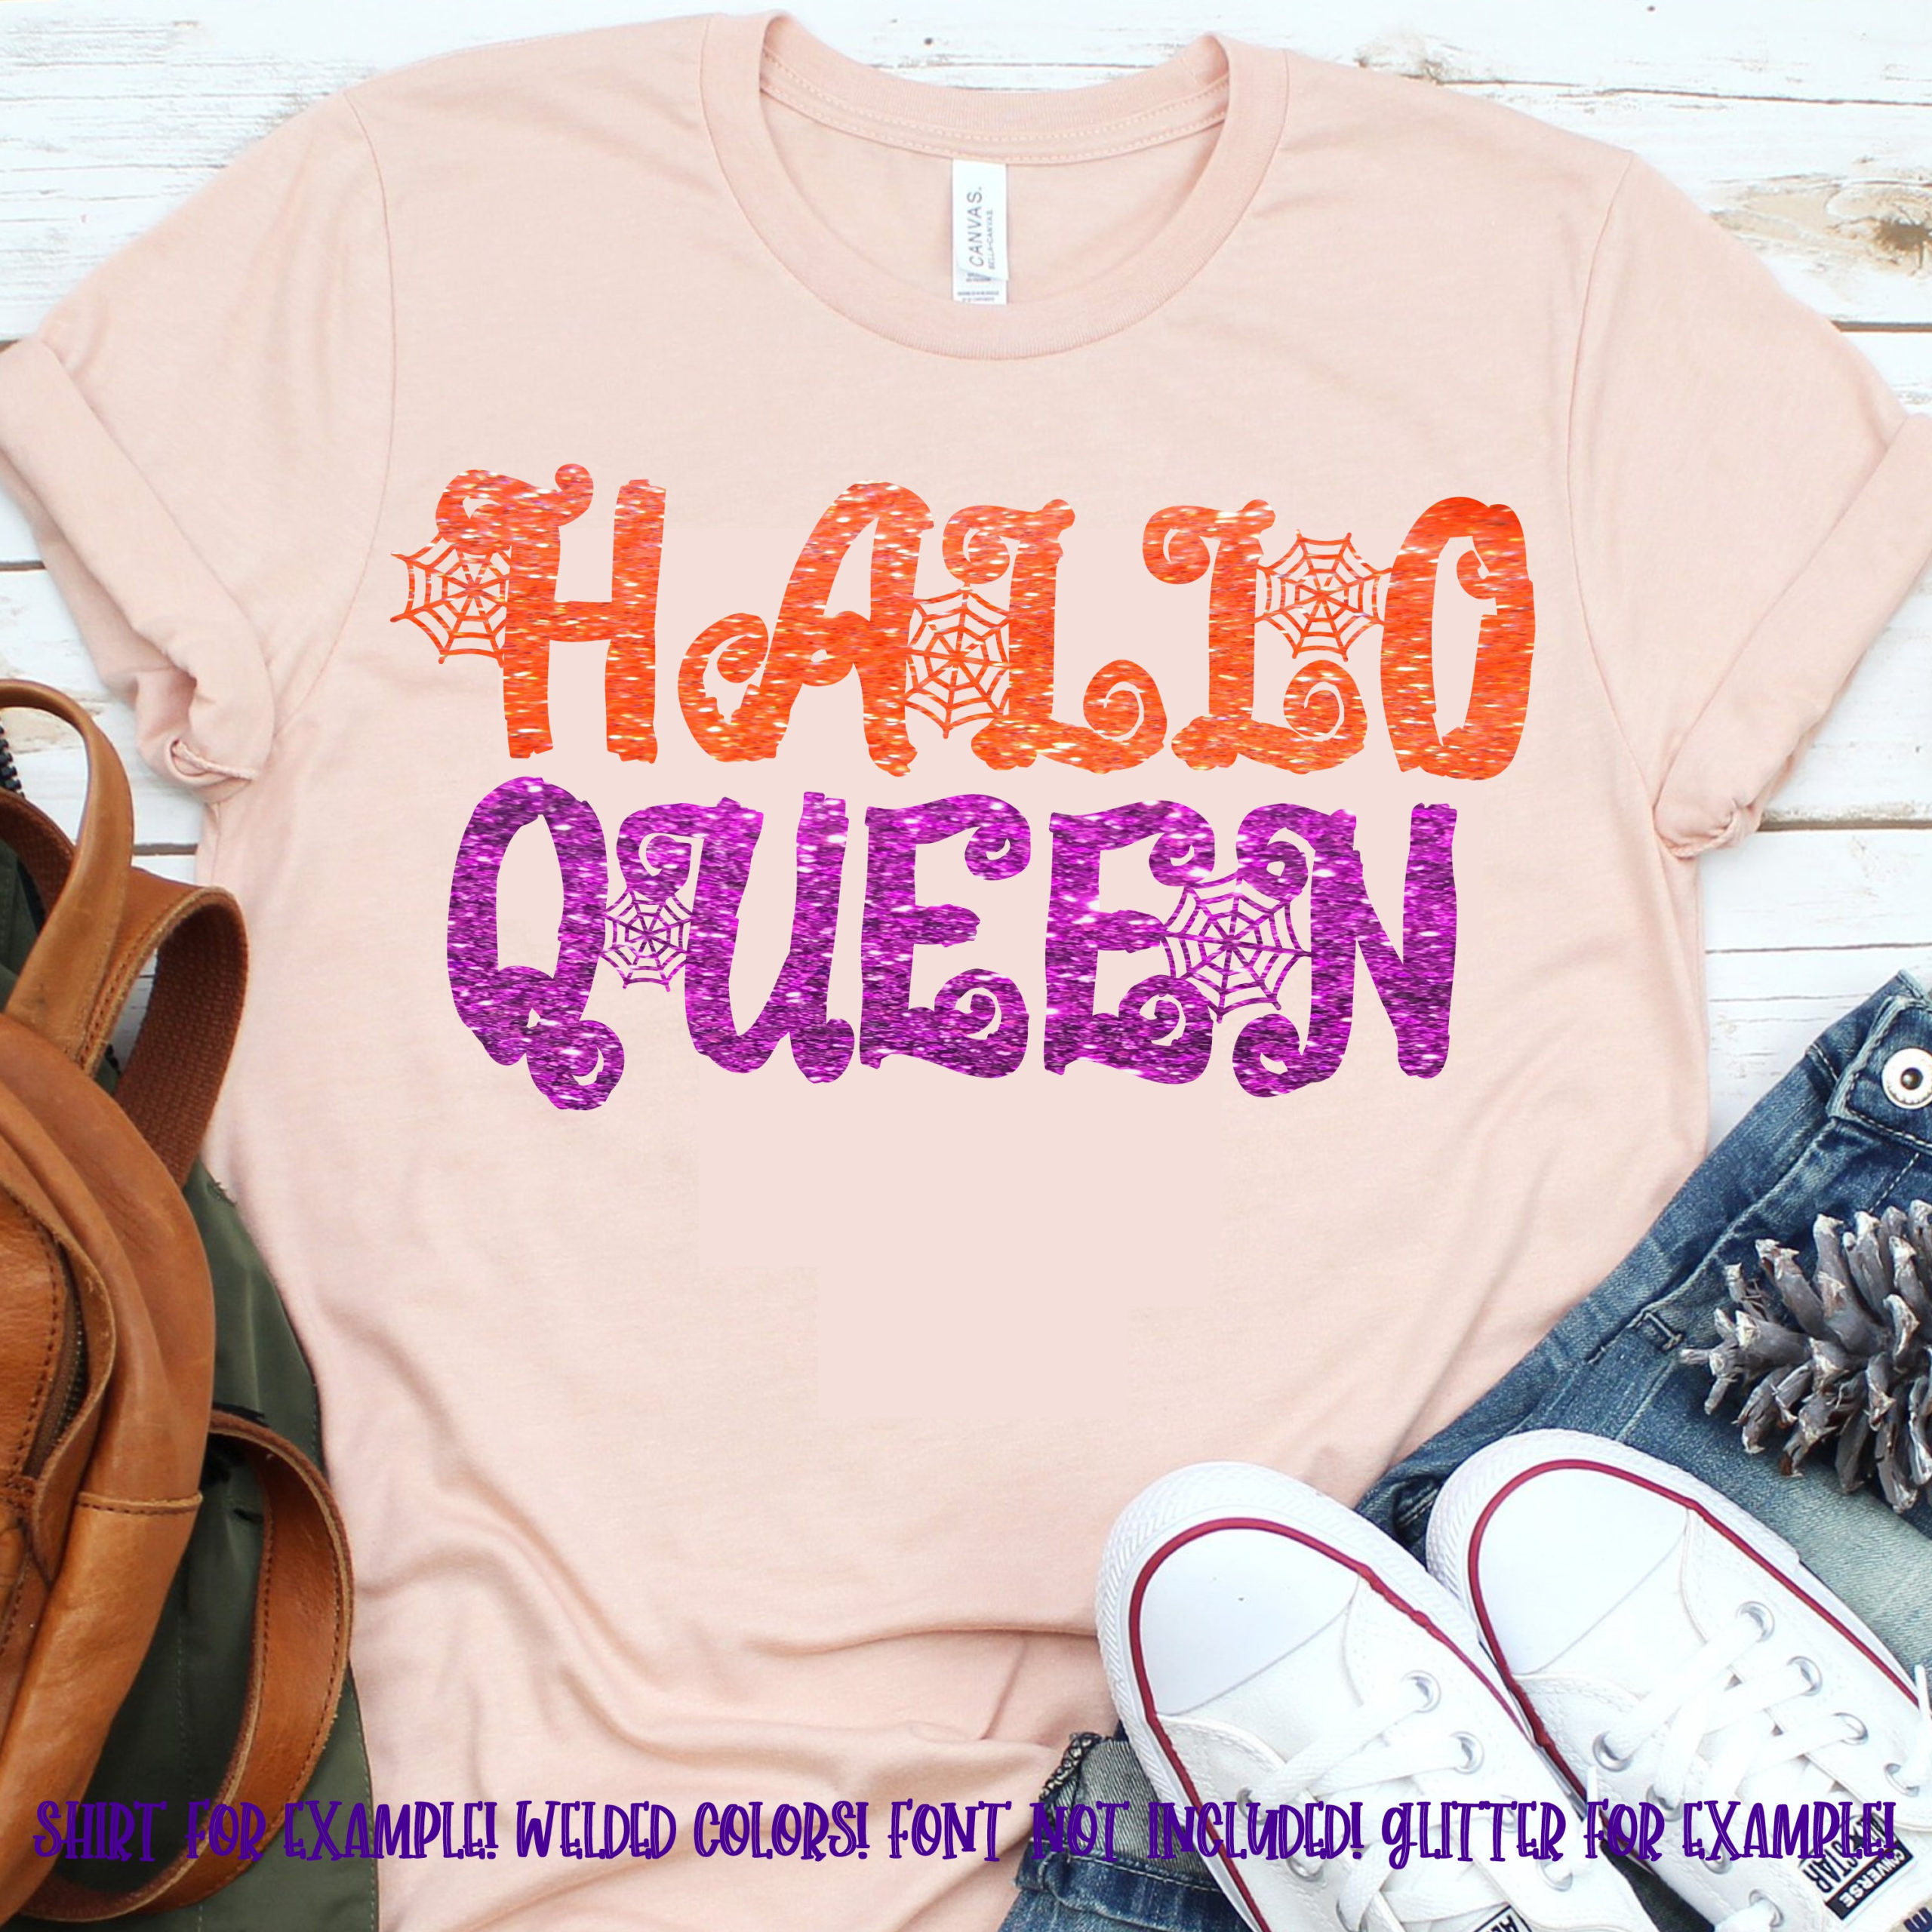 Halloqueen-spider-svg-hallo-queen-svg-halloween-svg-happy-halloween-svg-spiderweb-svg-cut-files-cricut-svg-svg-for-mobile-mobile-svg-5f721a95